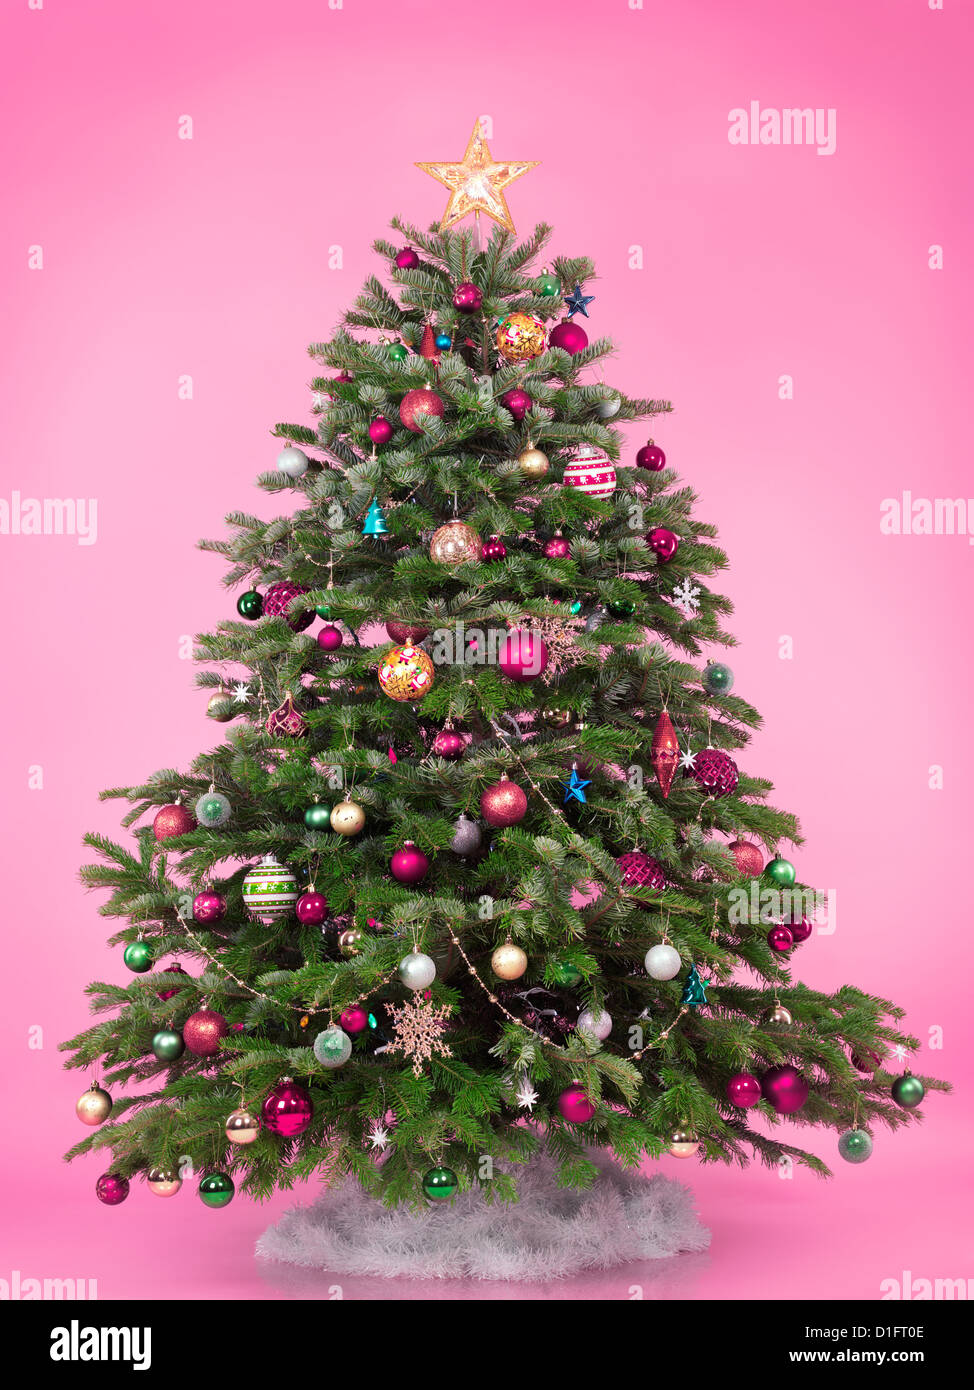 Decorated Christmas tree isolated on cute pink background - Stock Image